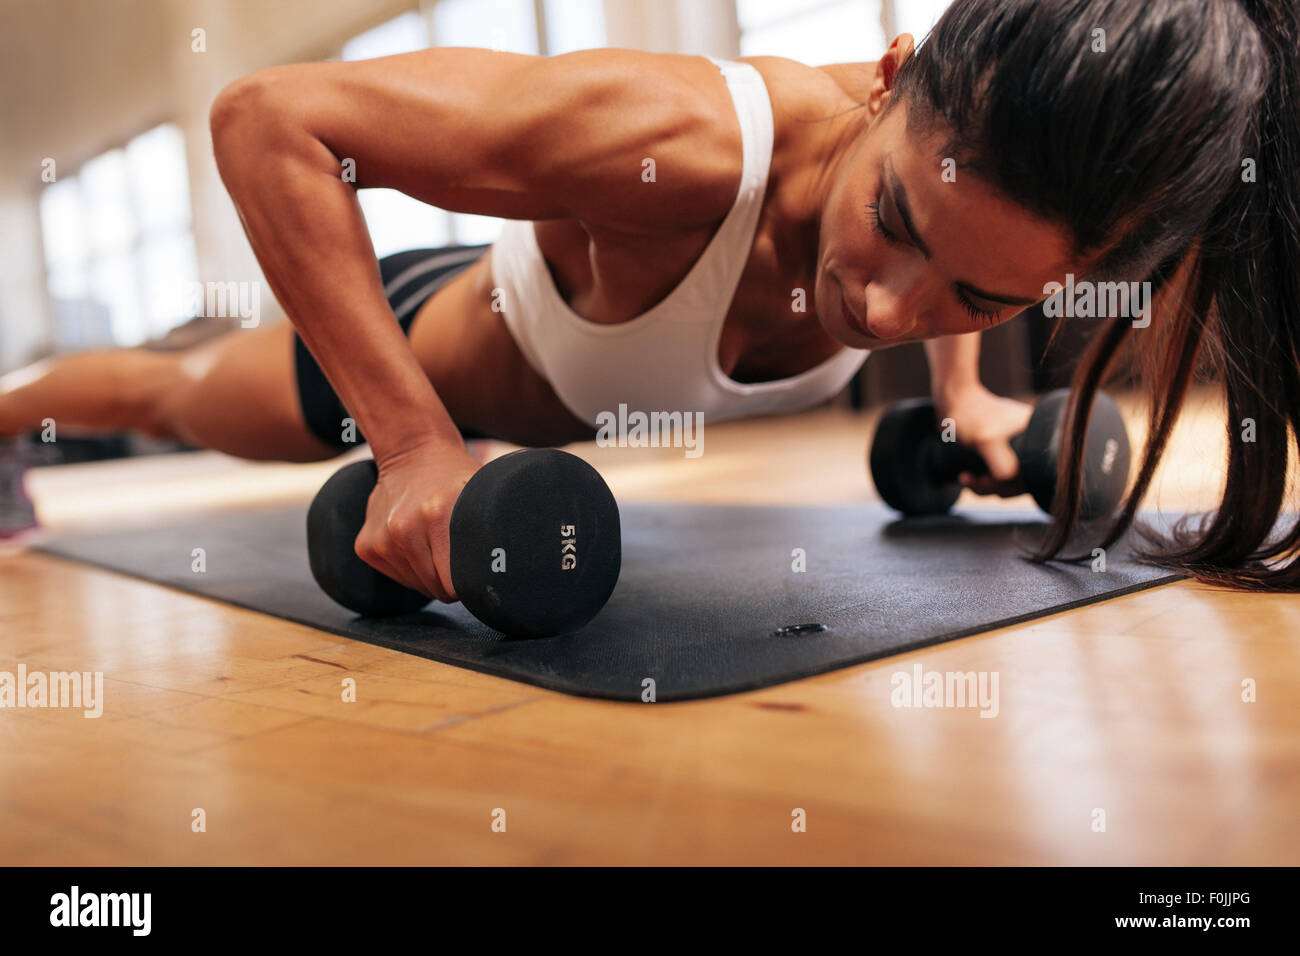 Strong young woman doing push ups exercise with dumbbells. Fitness model doing intense training in the gym. - Stock Image